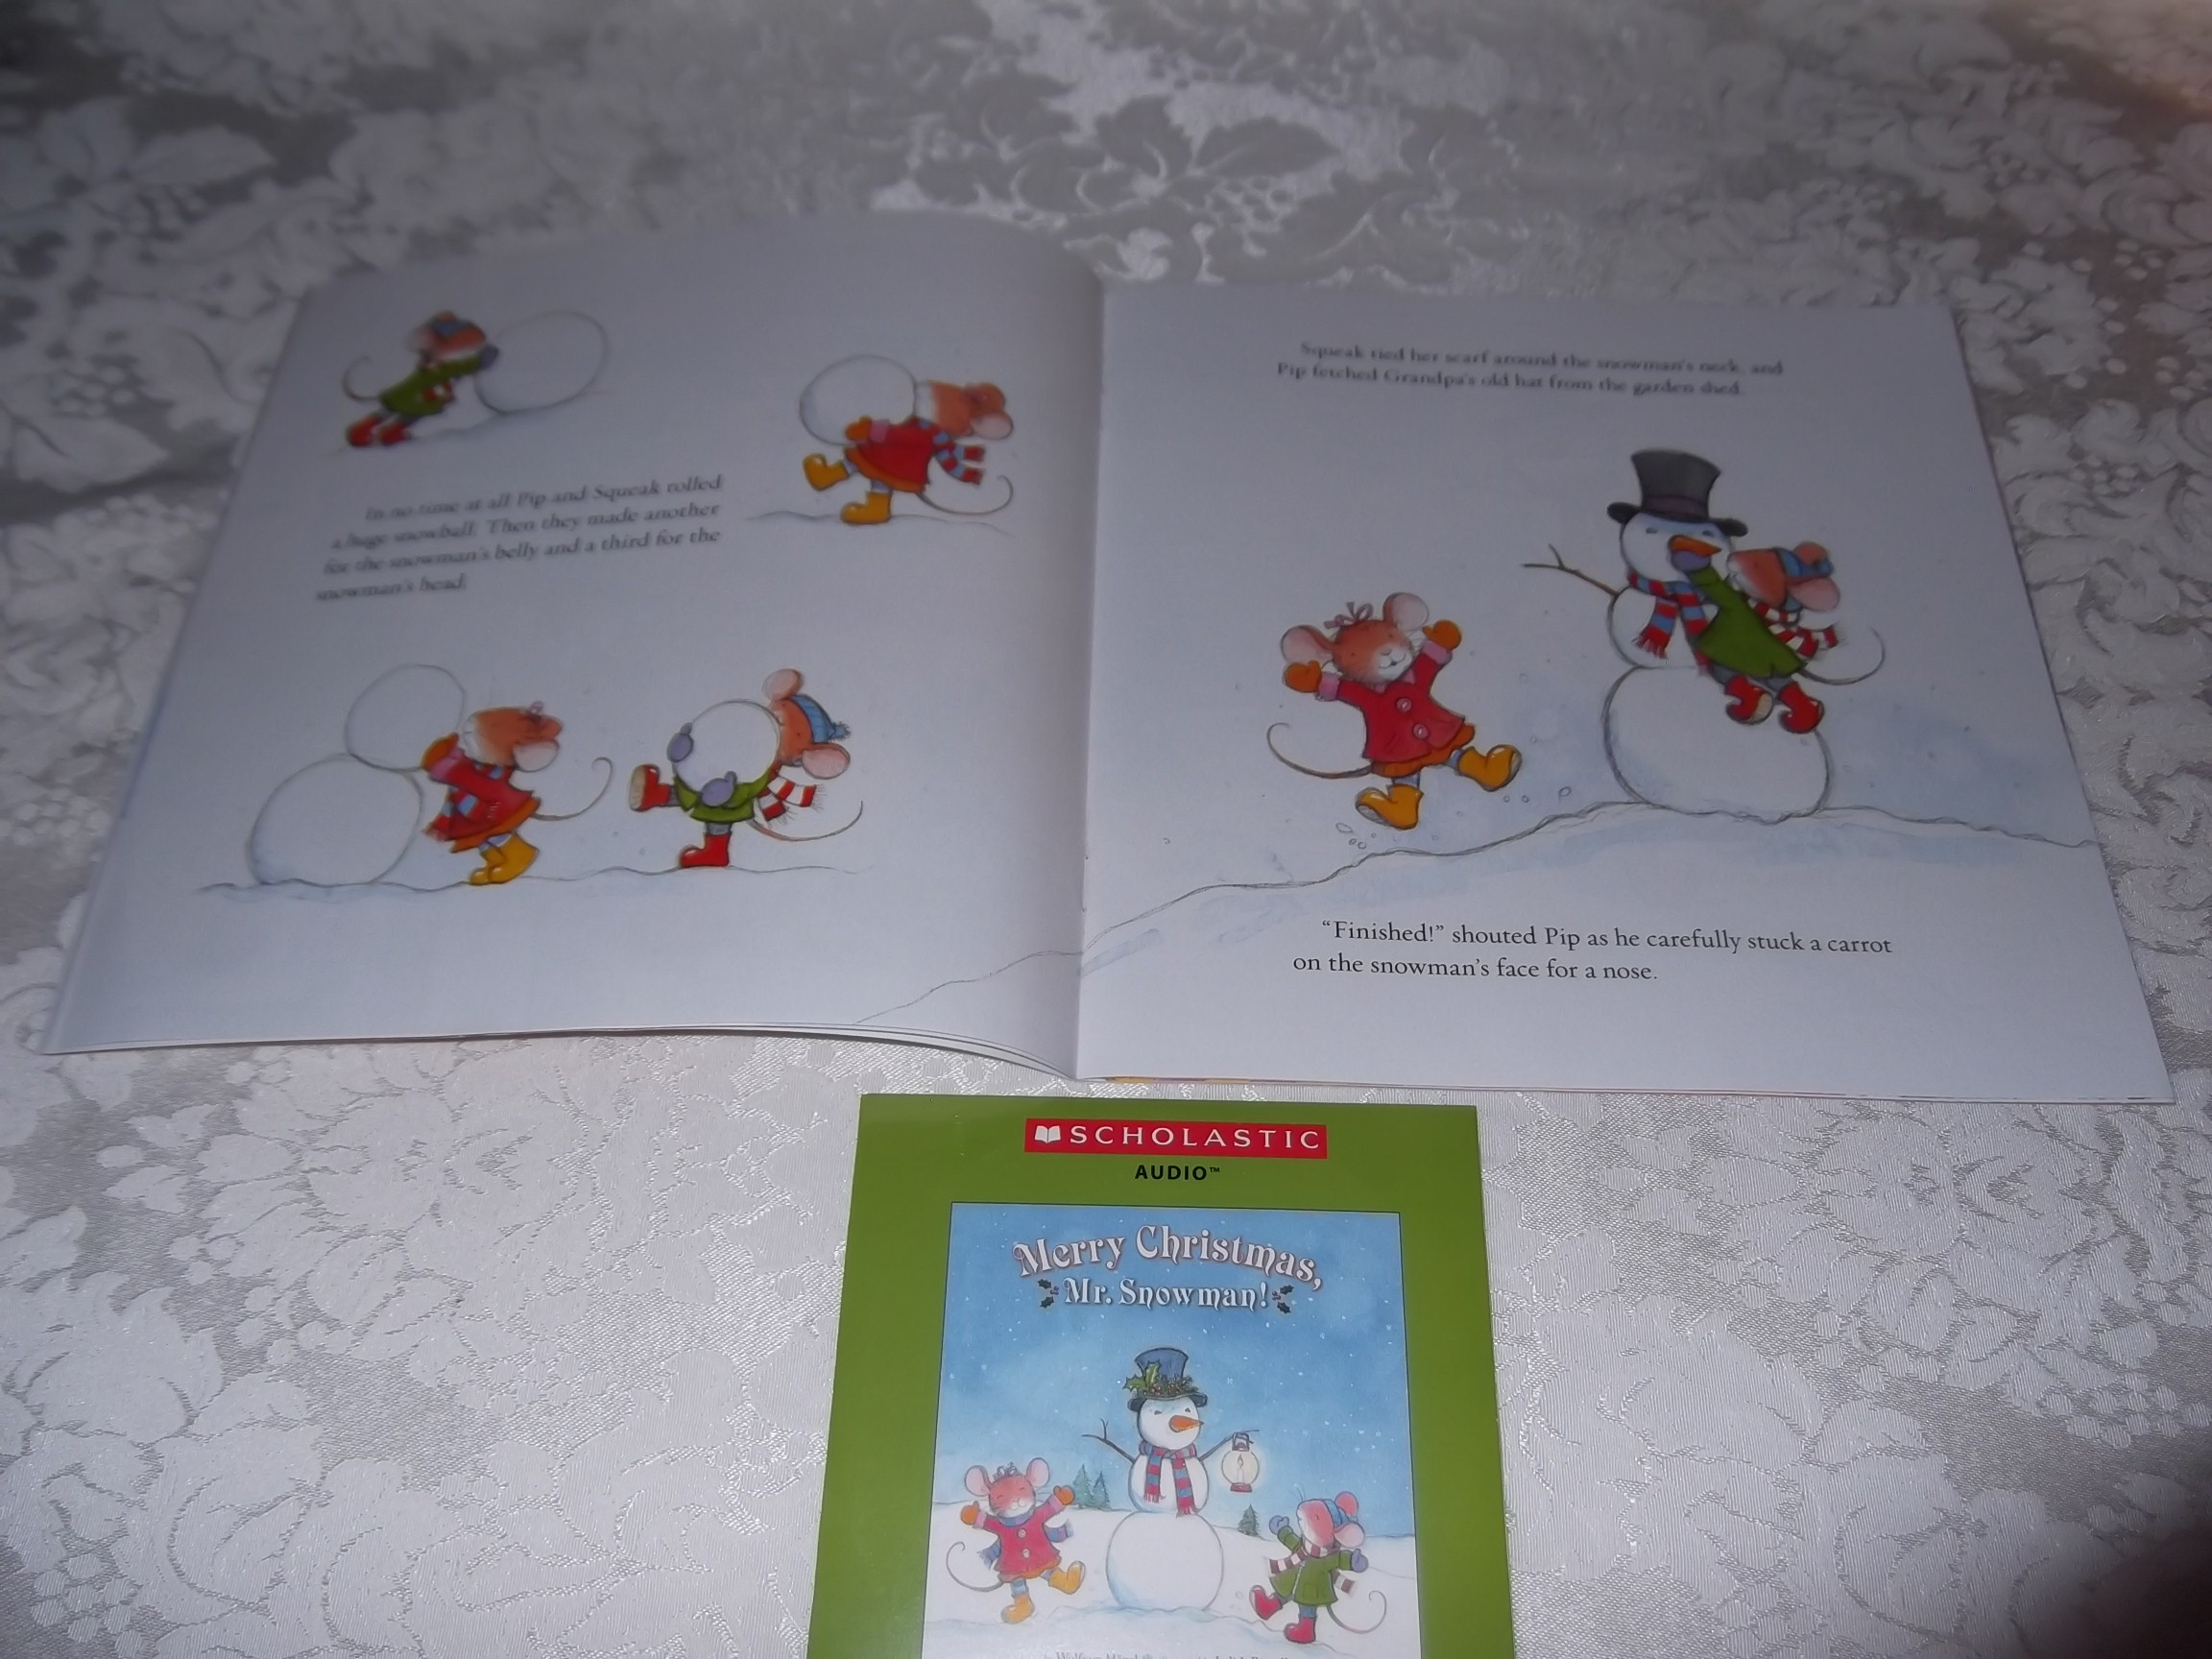 Image 2 of Merry Christmas, Mr. Snowman! Wolfram Hanel Audio CD and SC Brand New